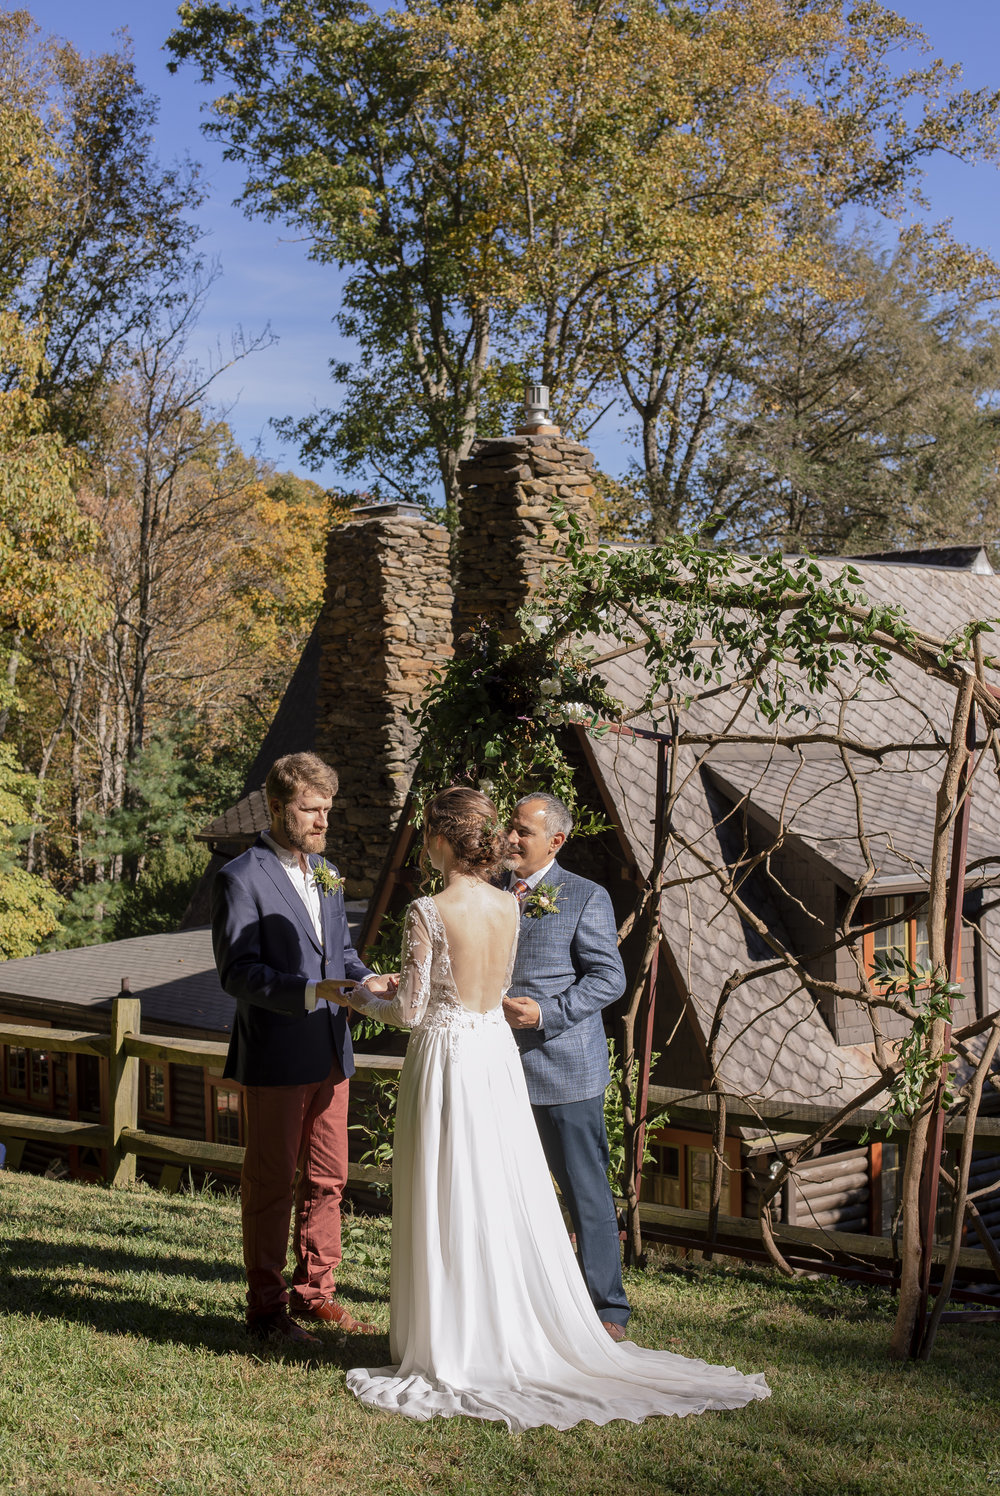 Laurel Falls Wedding October 2018_Allison and Josh__Lola Salon_Flora_Photo by Studio Misha Photography-30.jpg